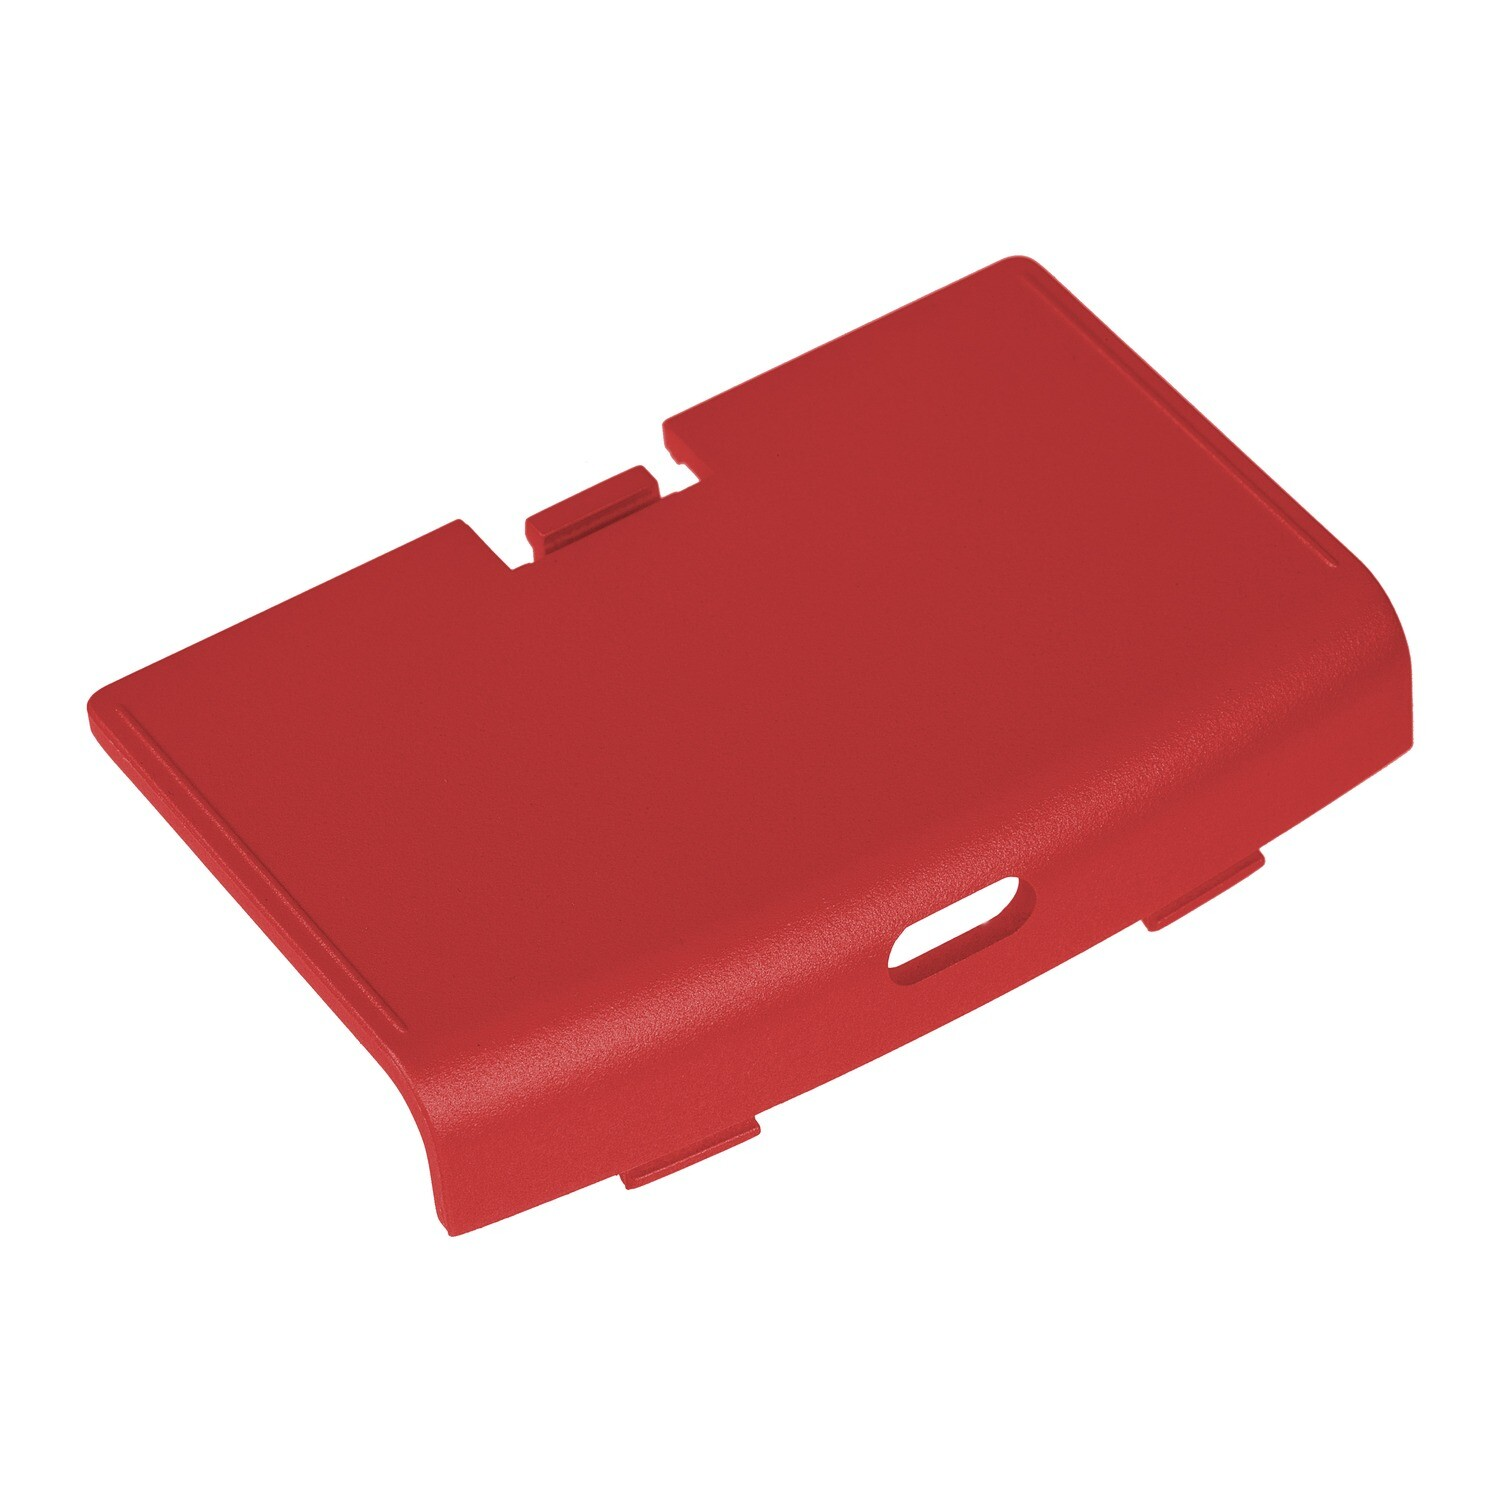 Game Boy Advance USB-C Battery Cover (Pearl Red)